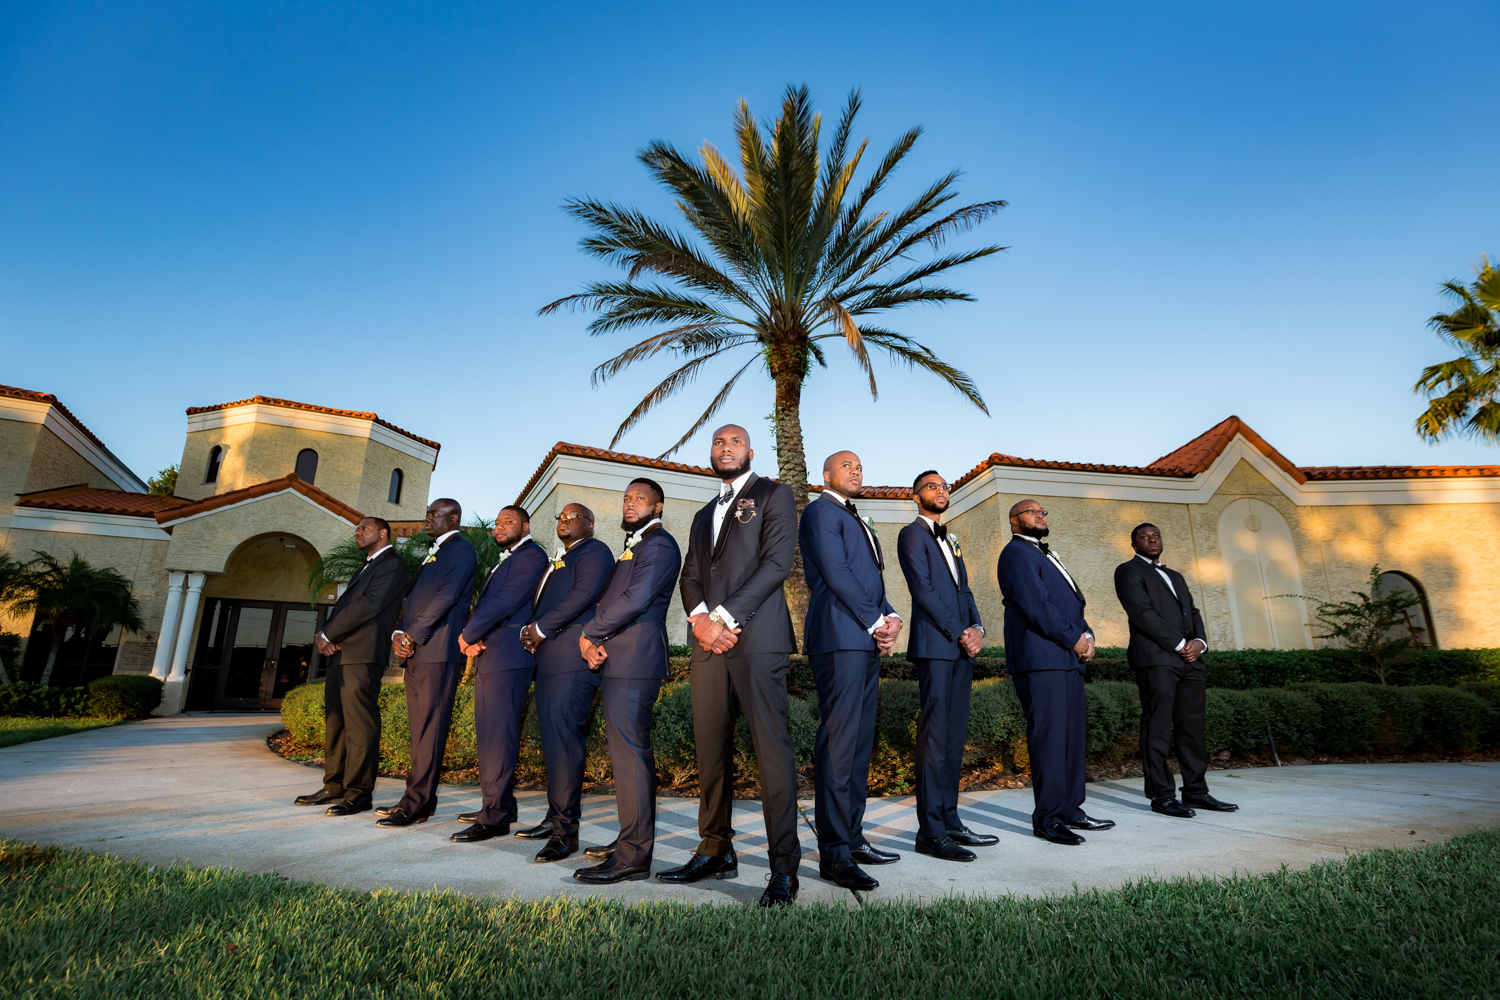 Groomsmen posed outside of their wedding venue.